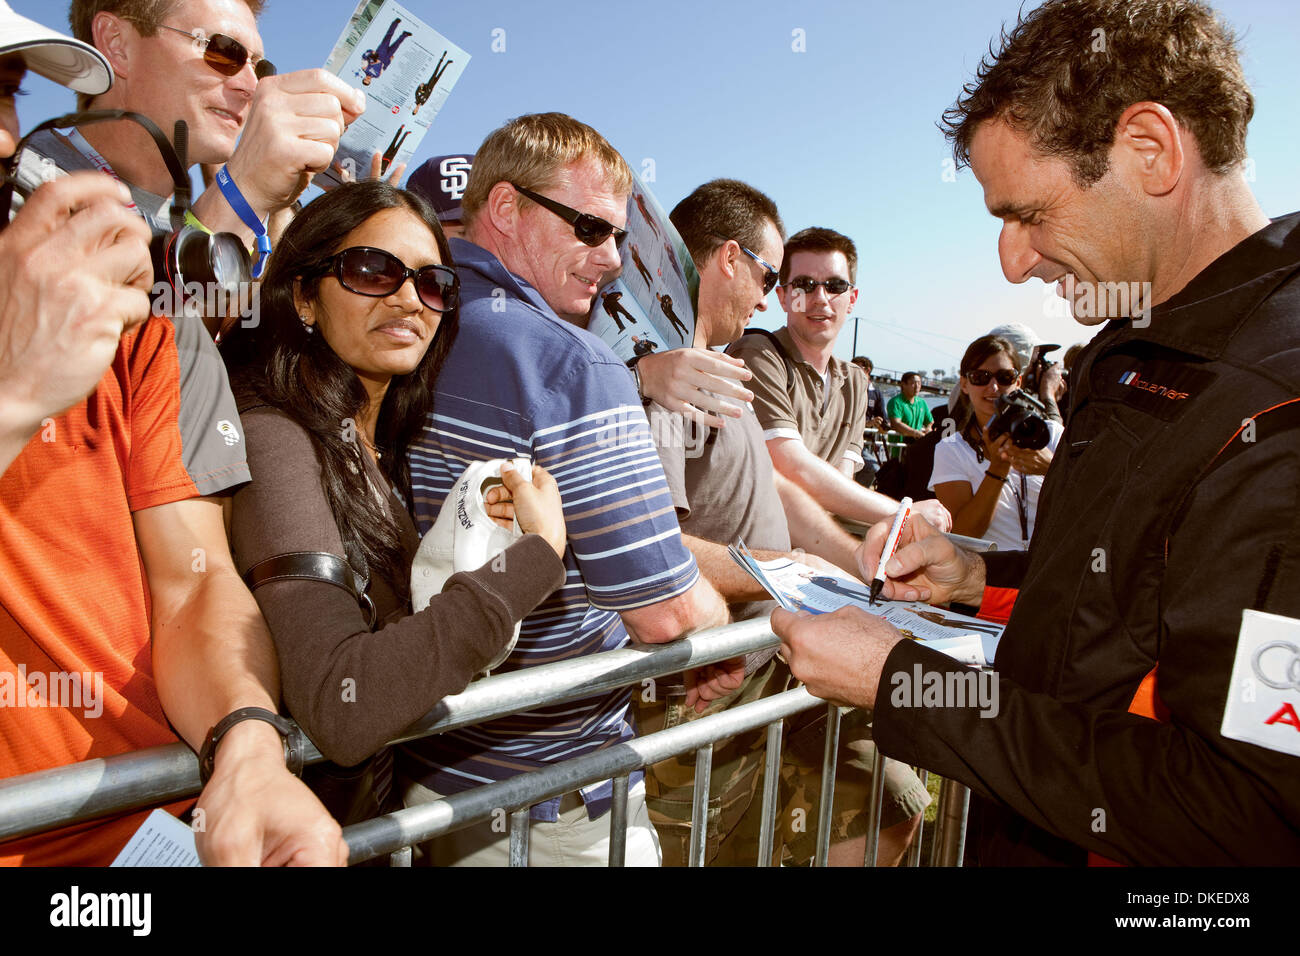 May 10, 2009 - San Diego, California, USA - NICOLAS IVANOFF  from France signing autographs after winning the 2009 Stock Photo